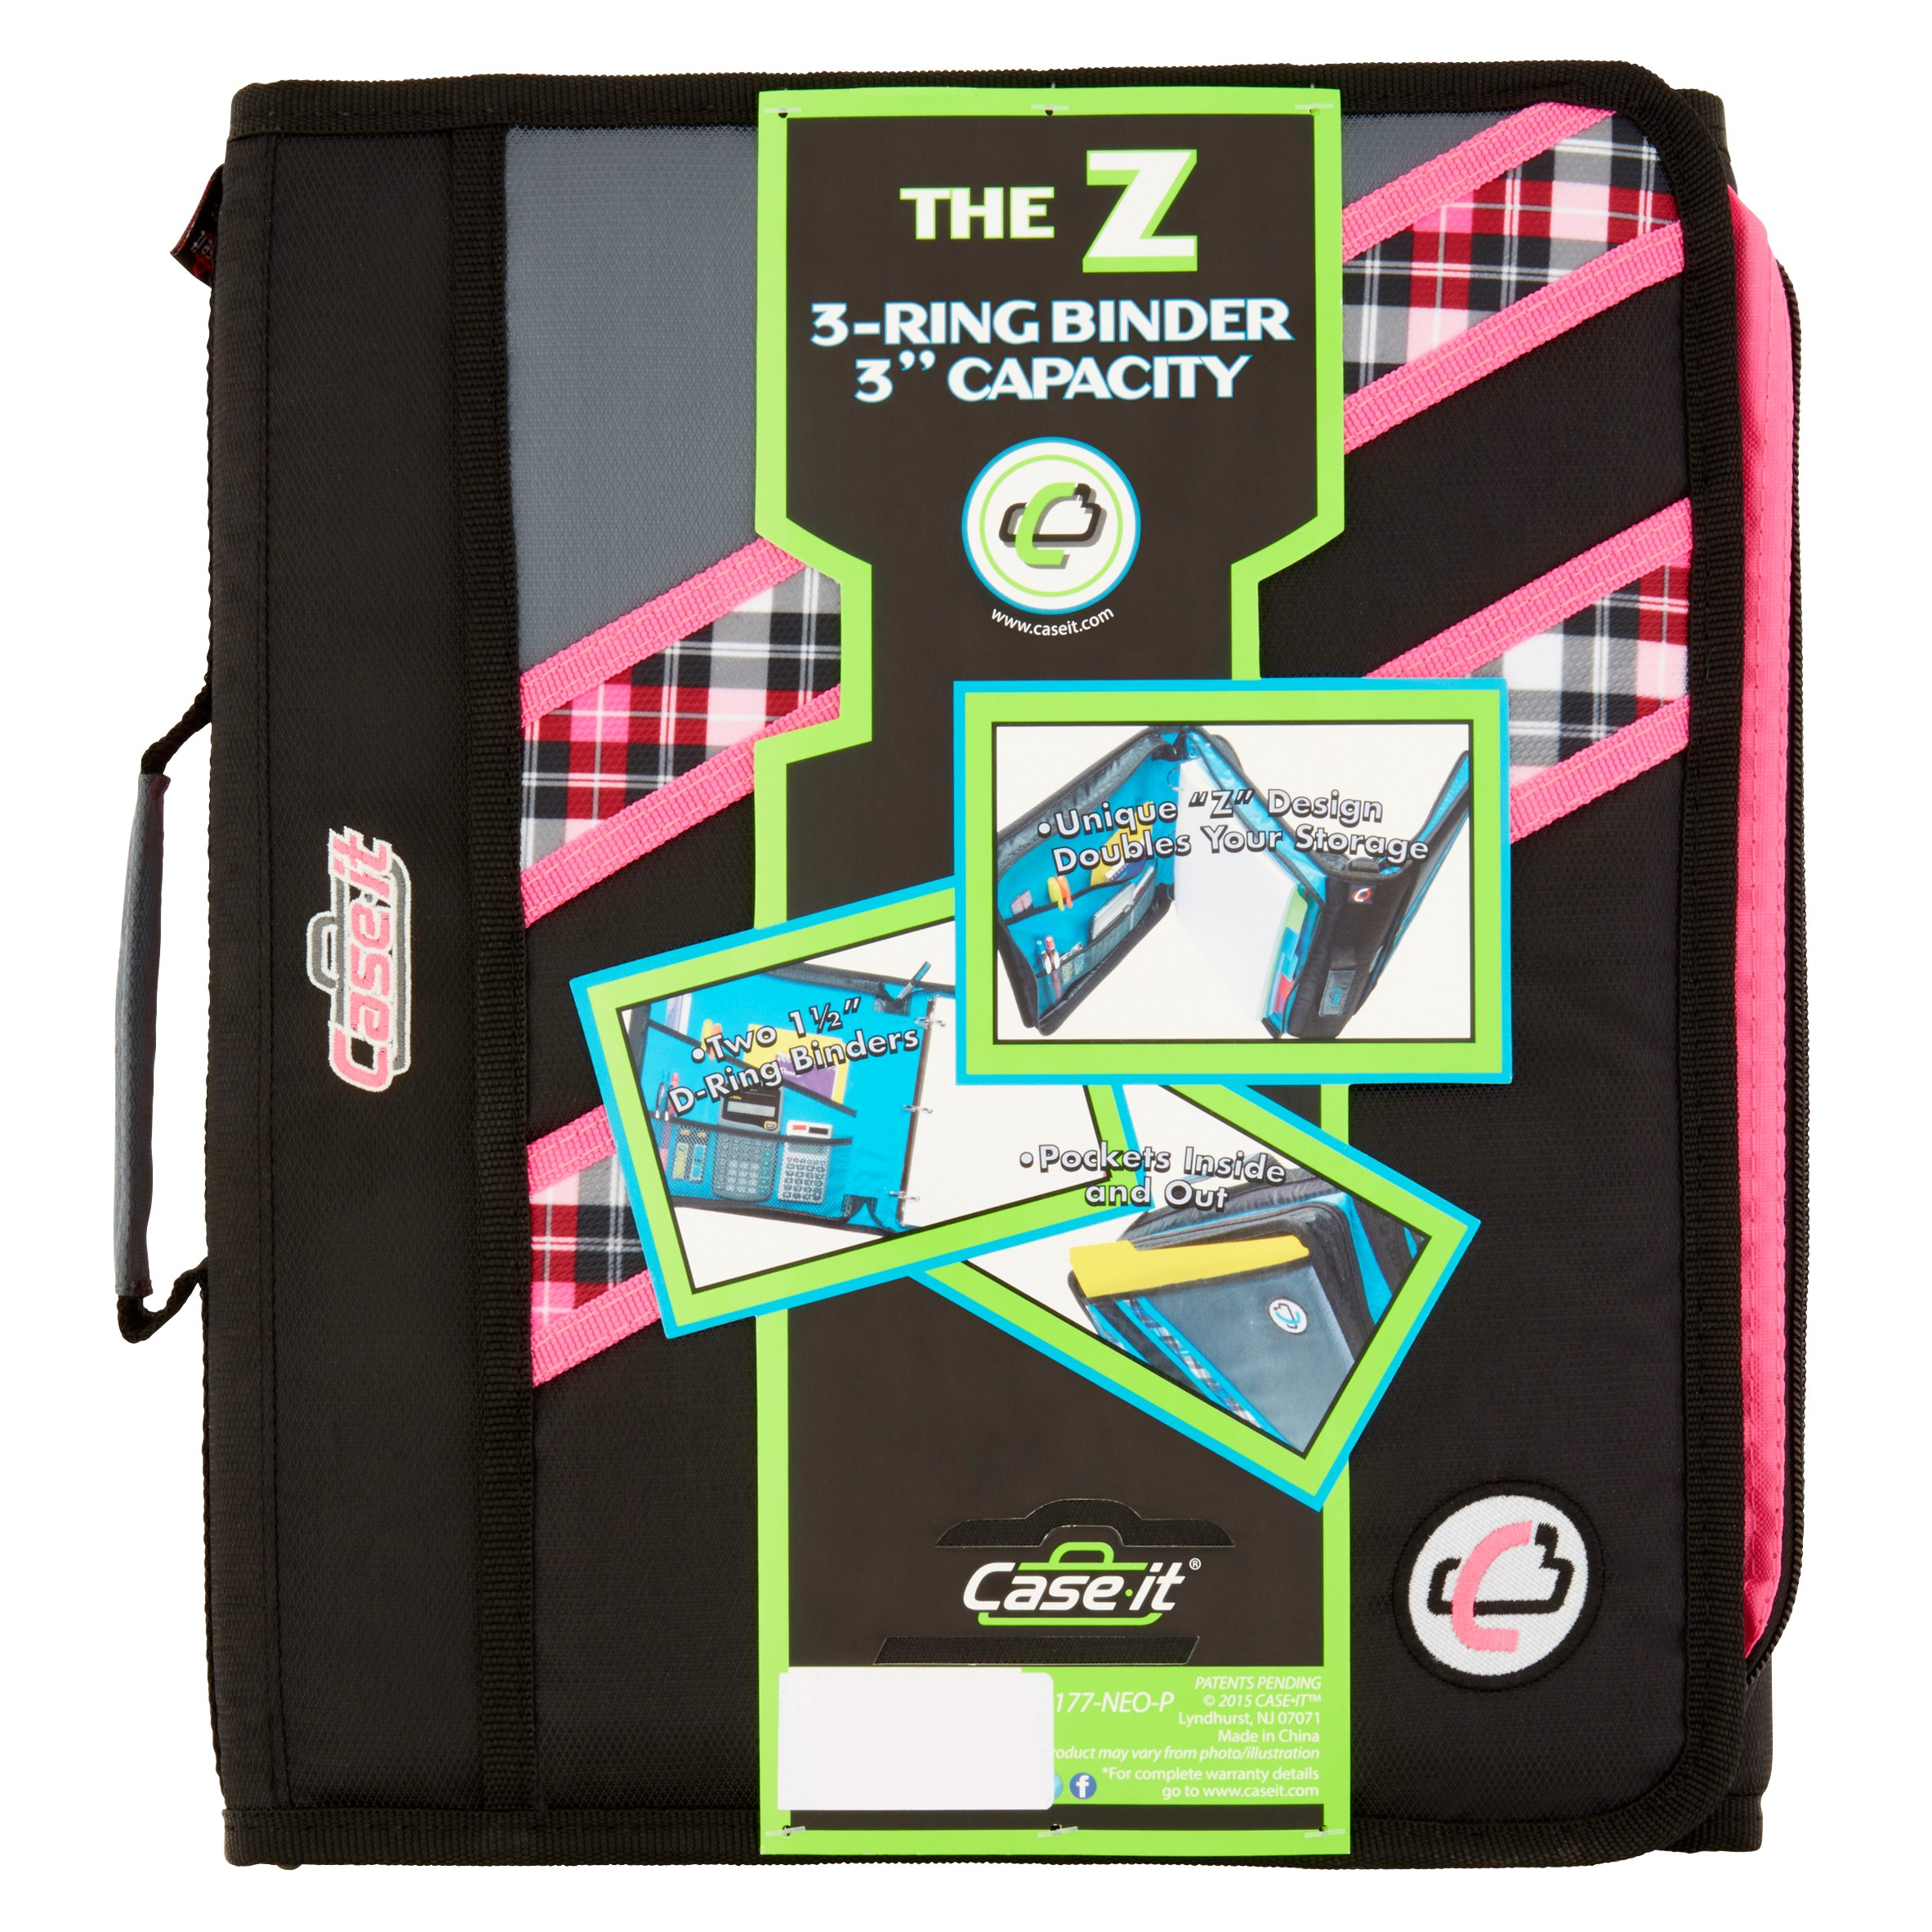 "Case It The Z 3-Ring Binder 3"" Capacity"